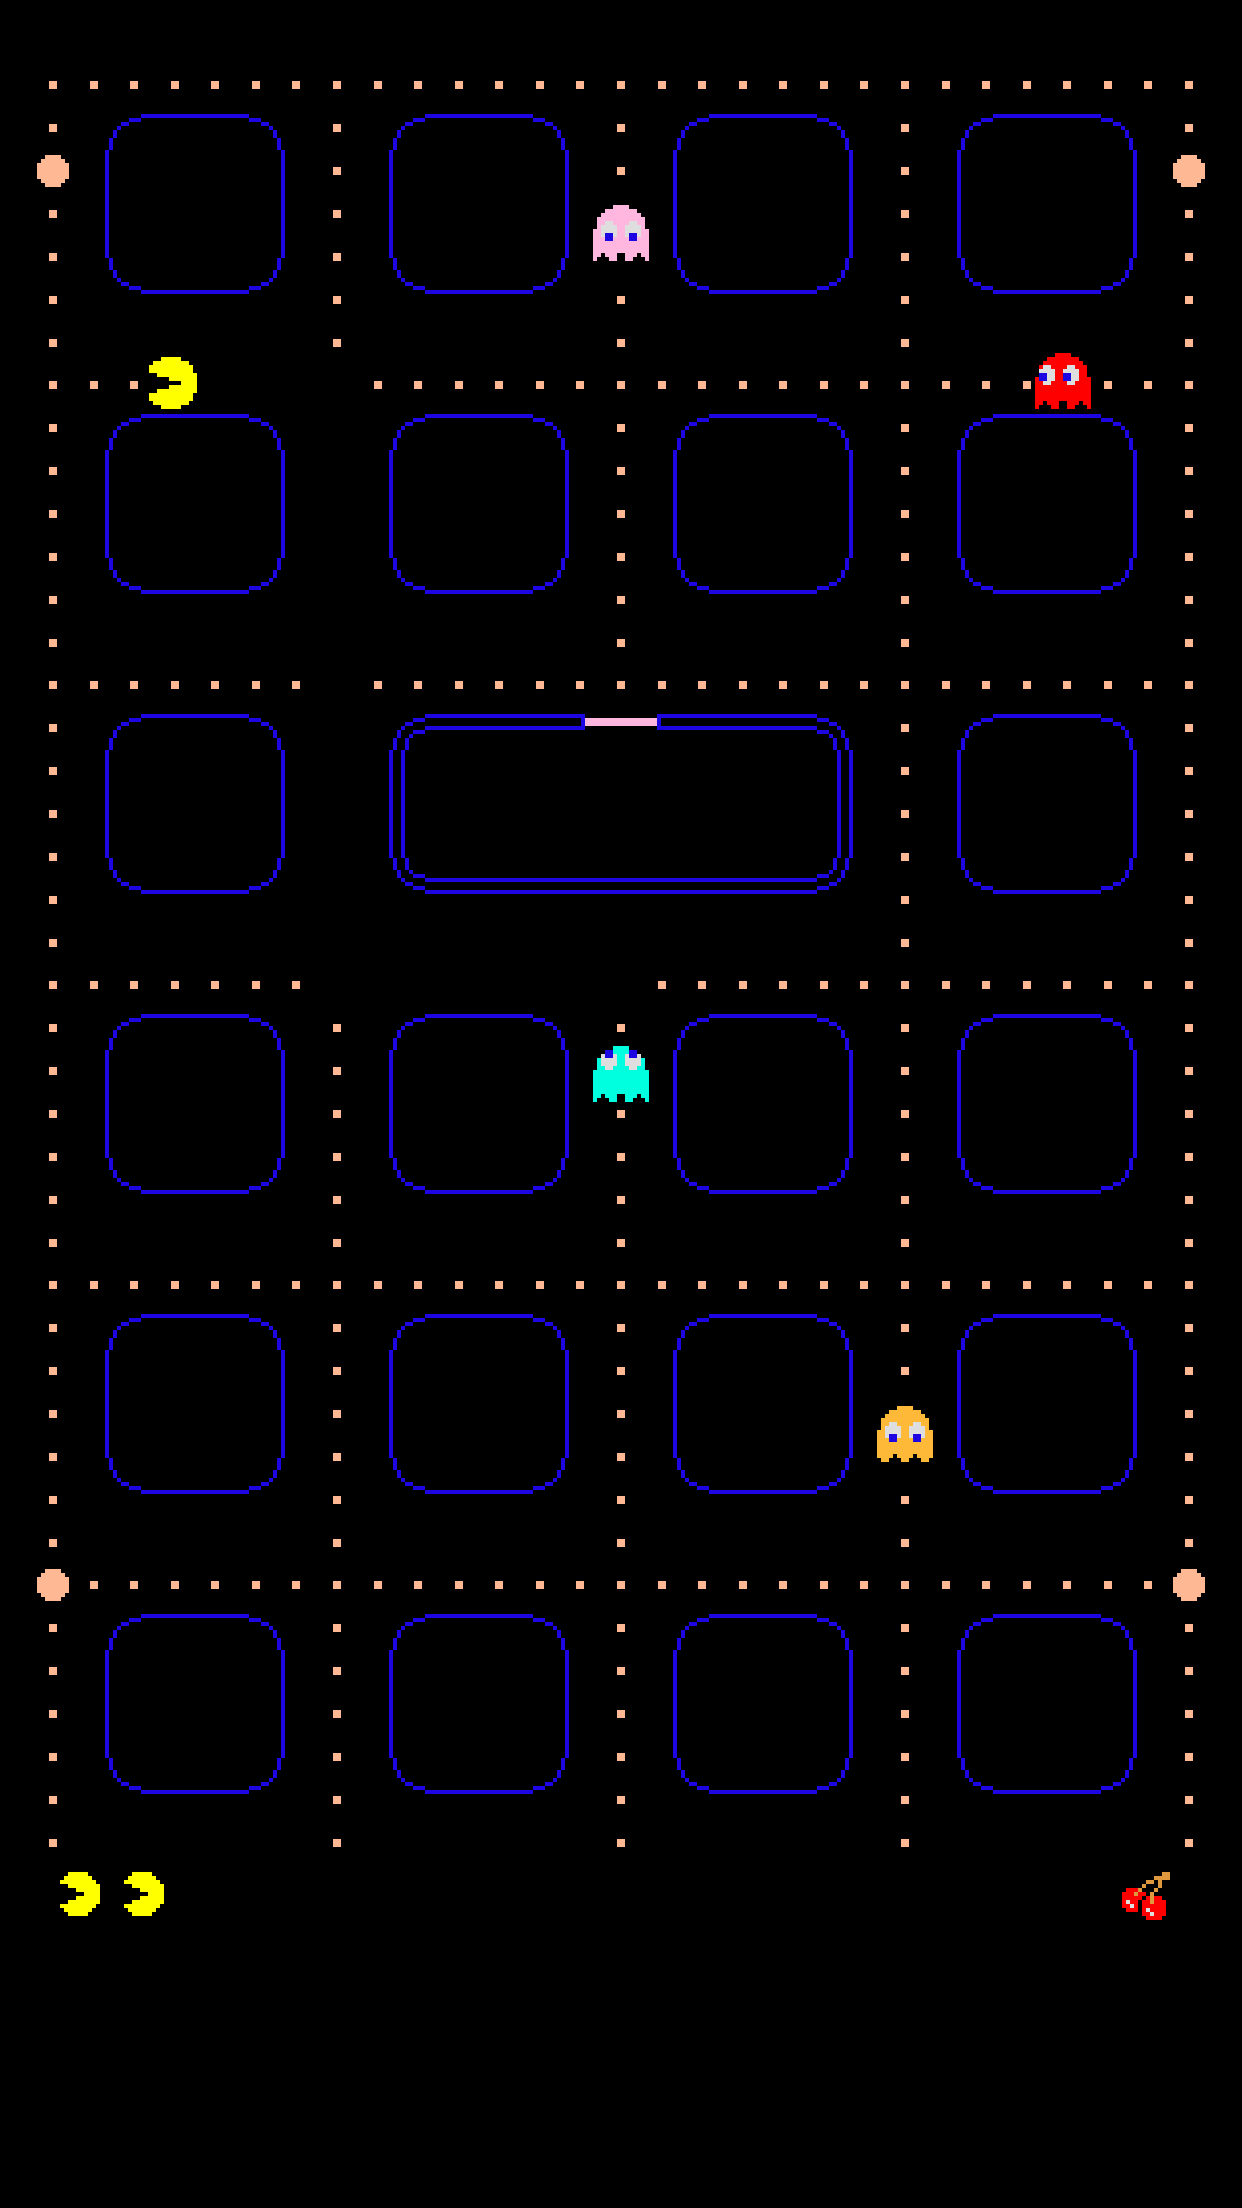 pac man iphone wallpaper jeffrey carl faden 39 s blog